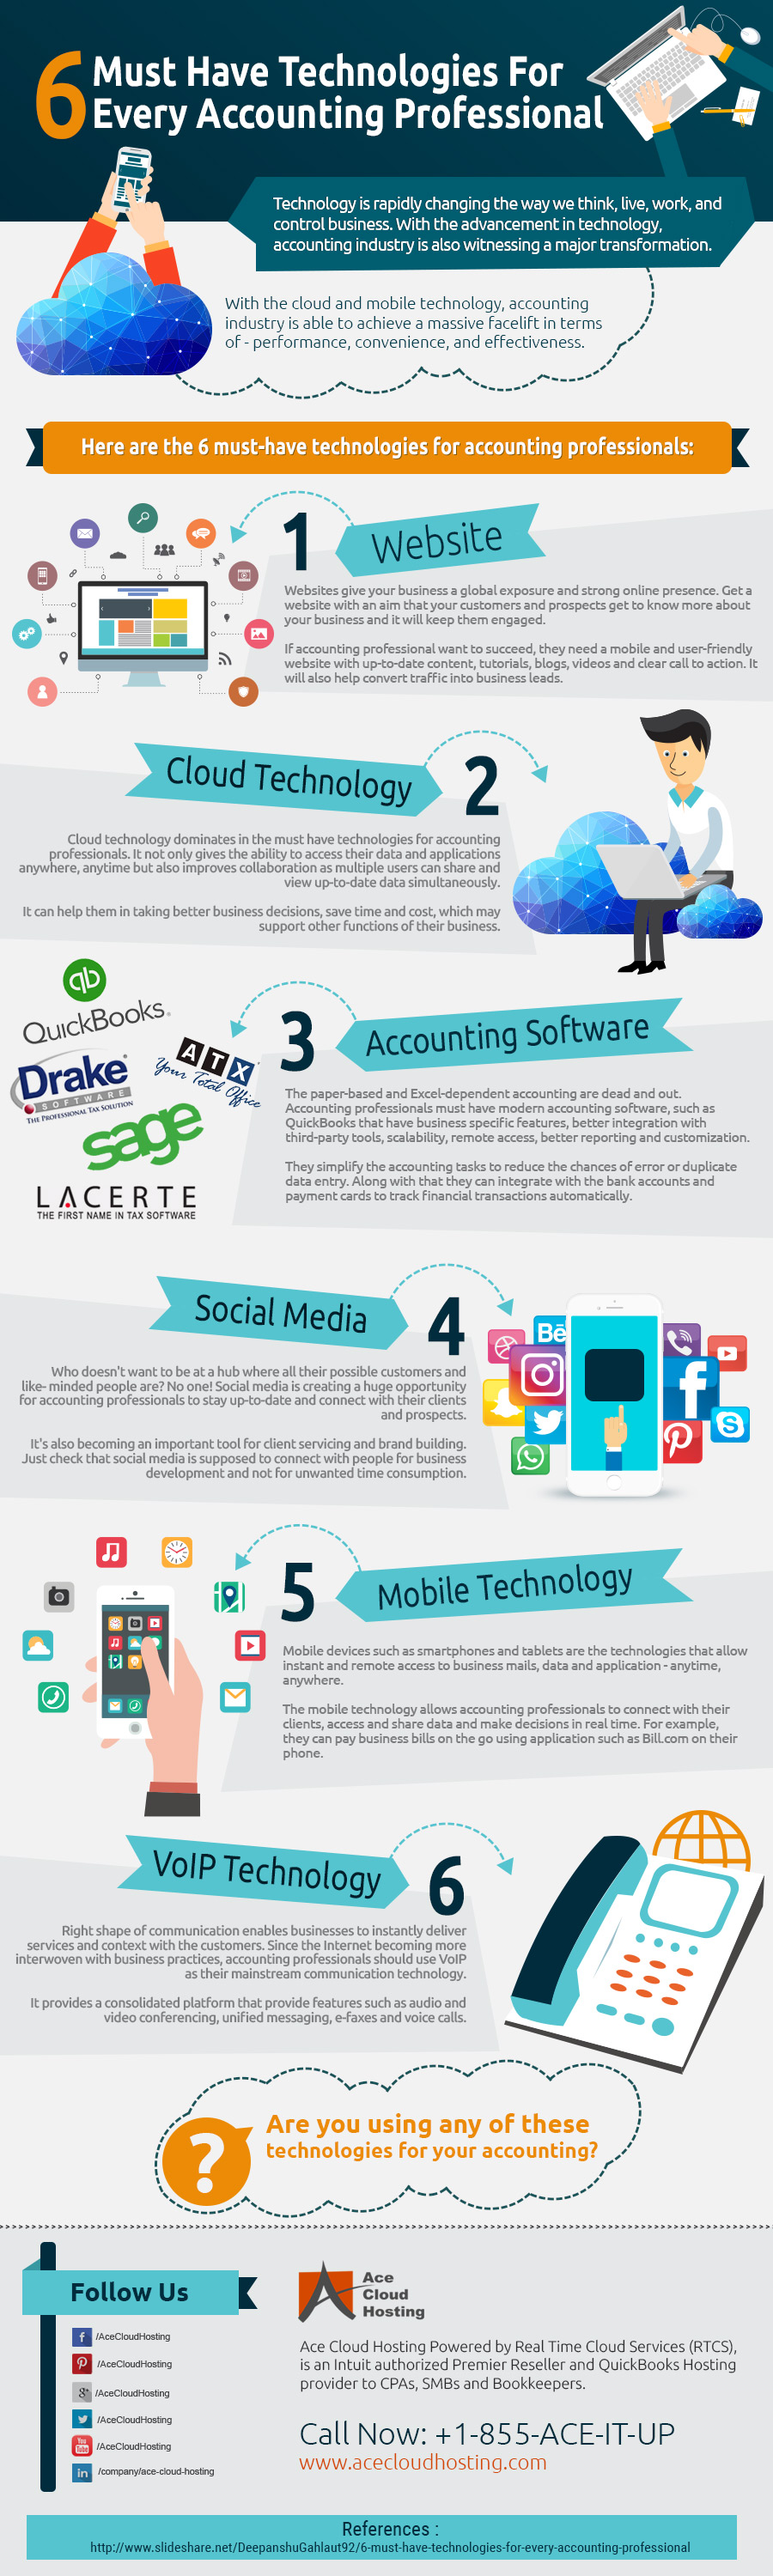 infographic technologies for accountants